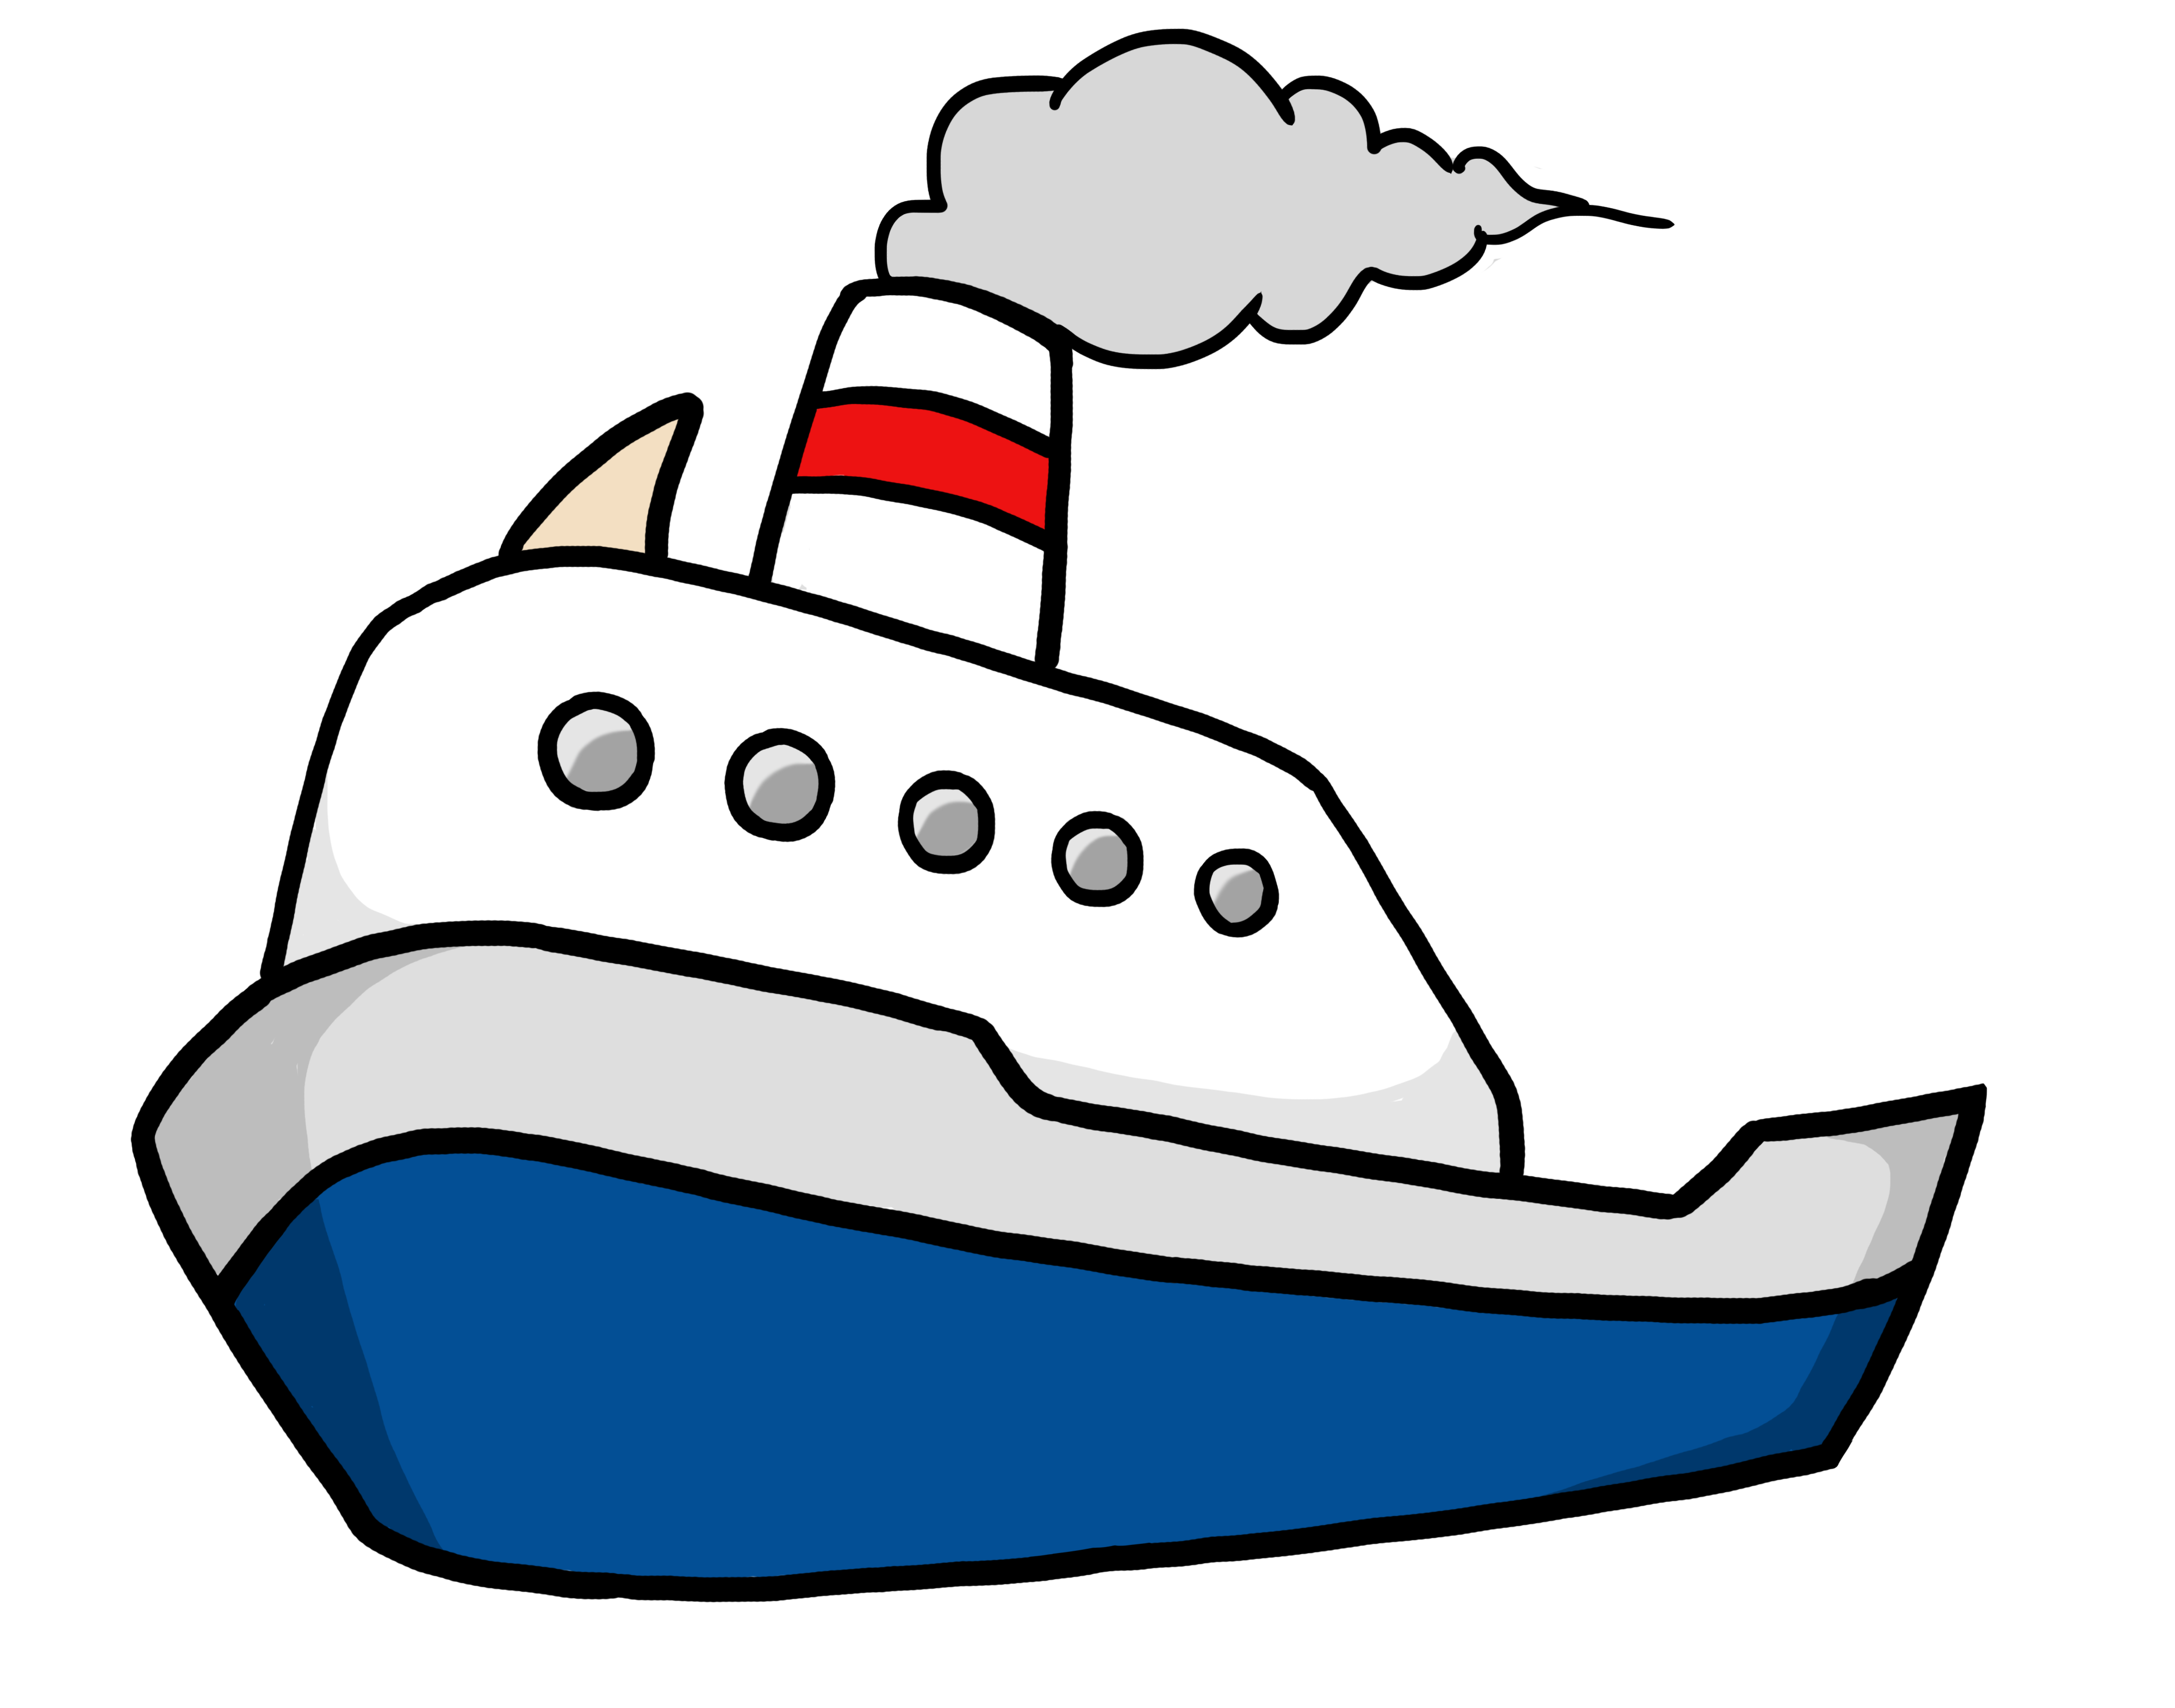 4000x3142 Collection Of Boat Clipart High Quality, Free Cliparts